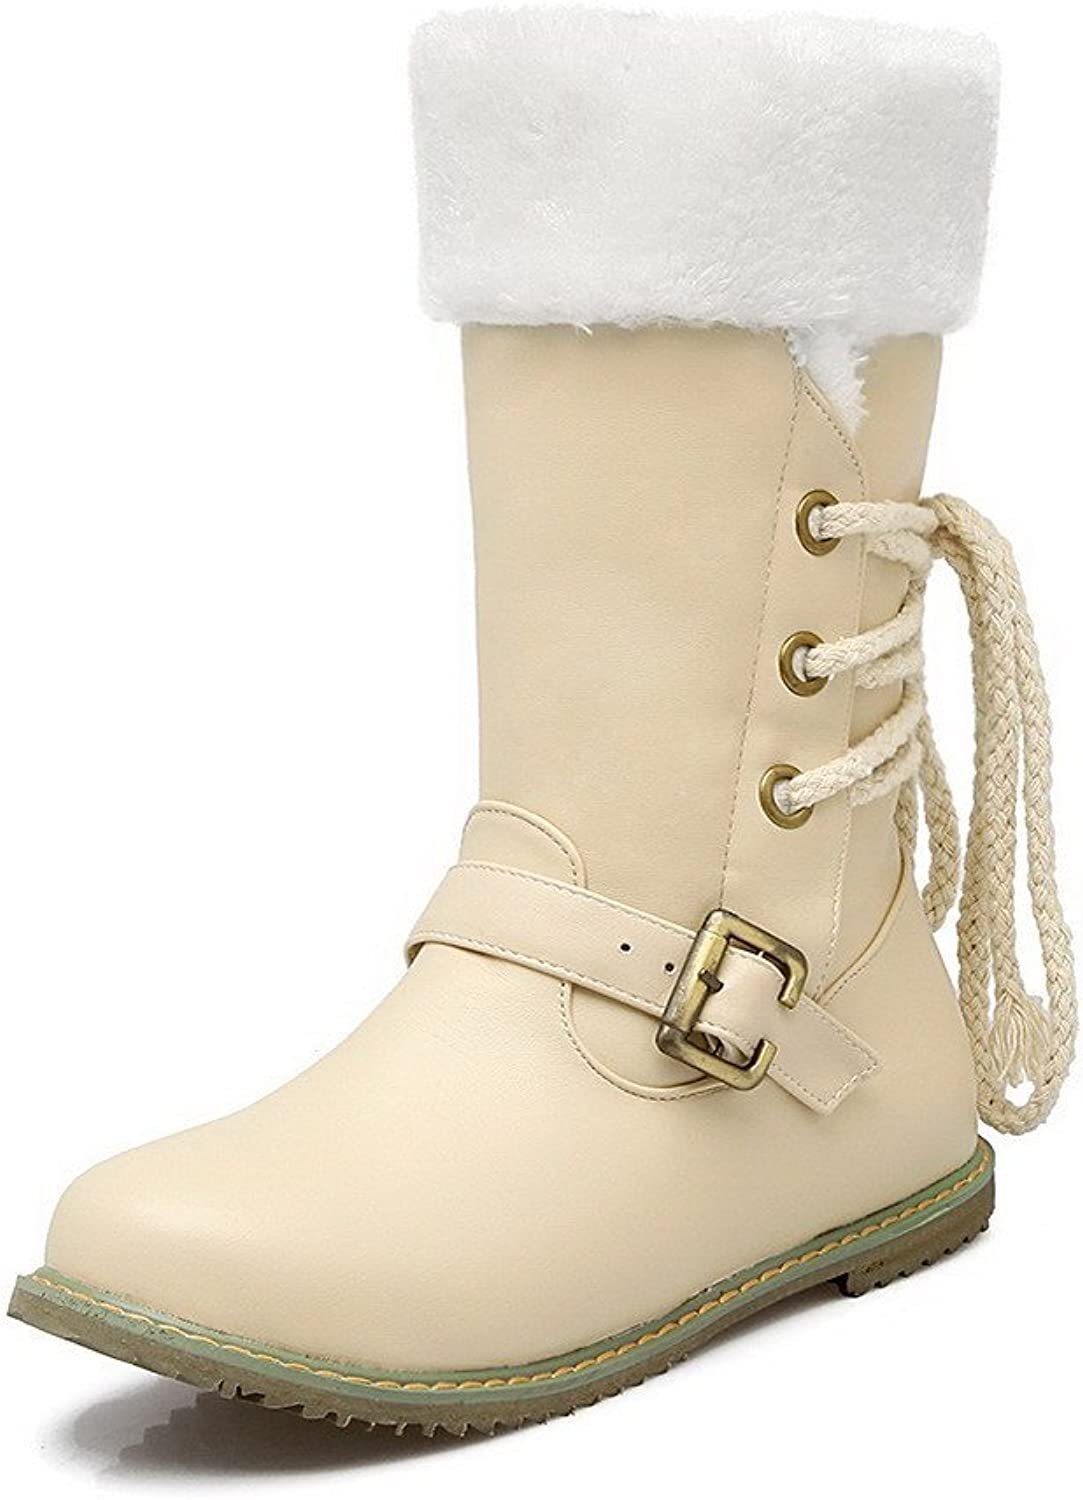 AmoonyFashion Women's Pull-On Low-Heels PU Solid Low-Top Boots